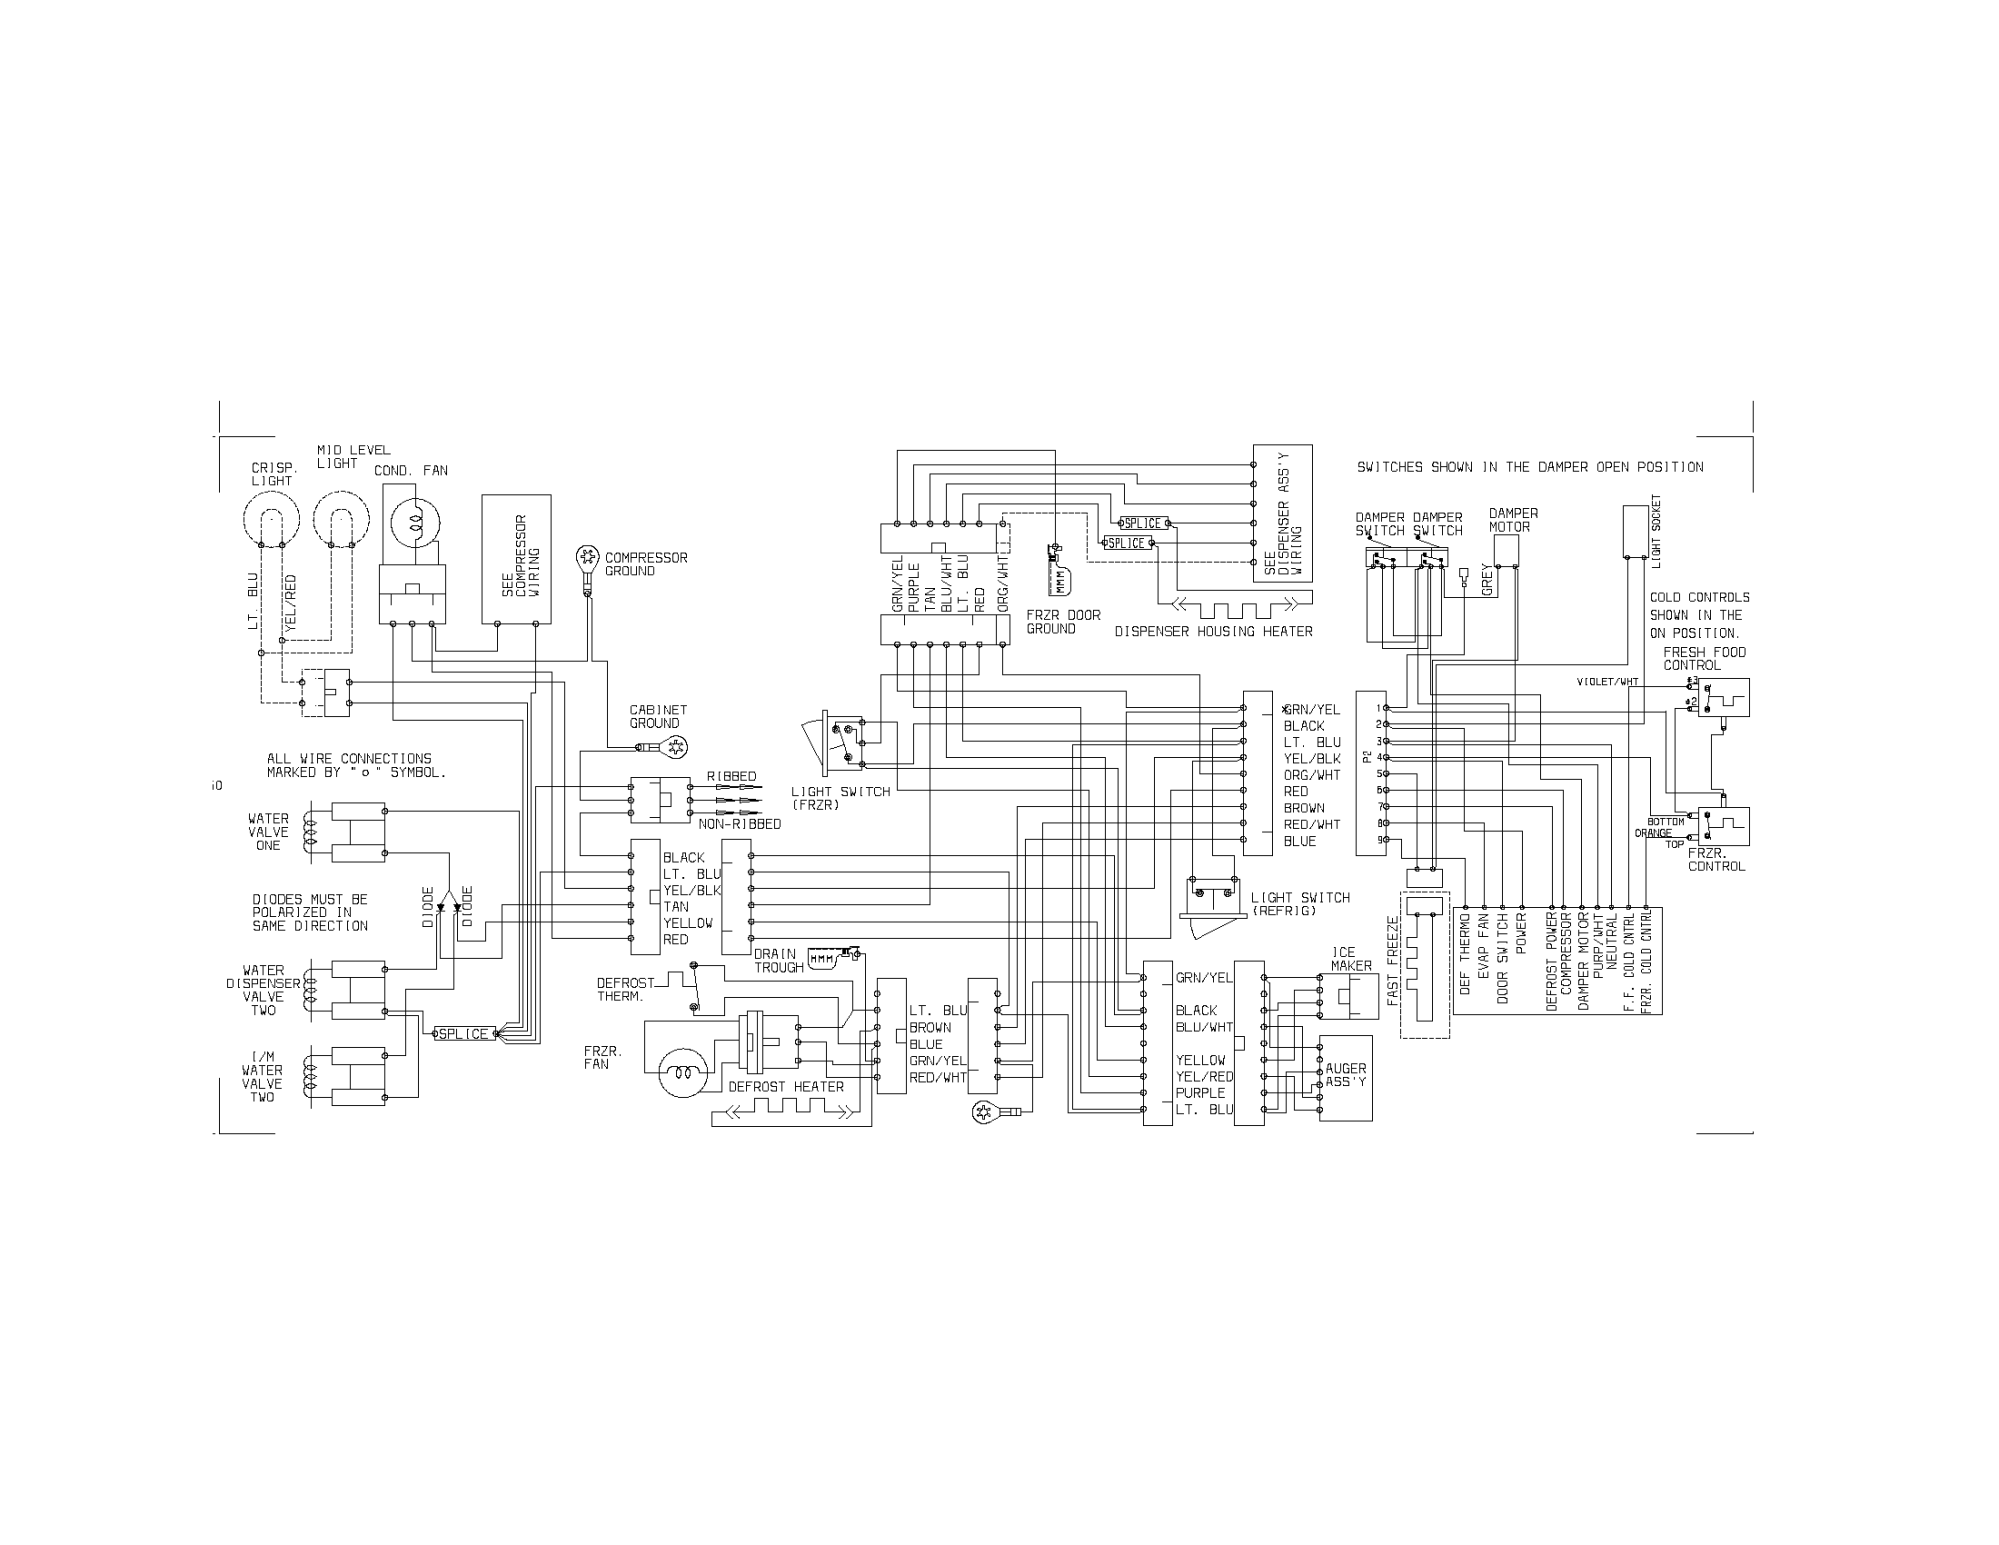 hight resolution of freezer wiring diagram for walk in freezer wiring a walk in freezer wiring freezer control wiring